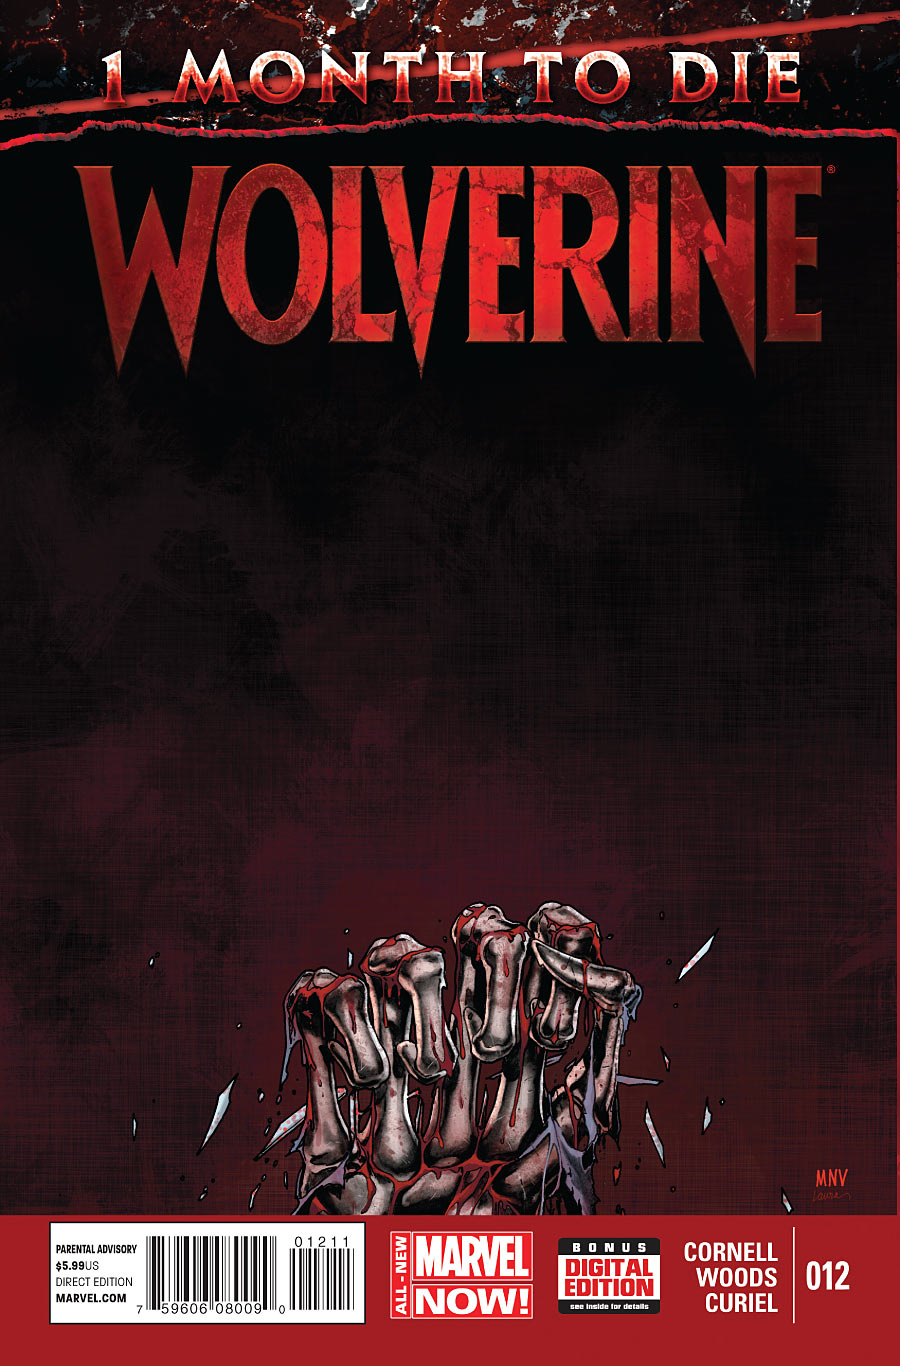 Wolverine 12 - One month to Die - The Last Wolverine Story Conclusion